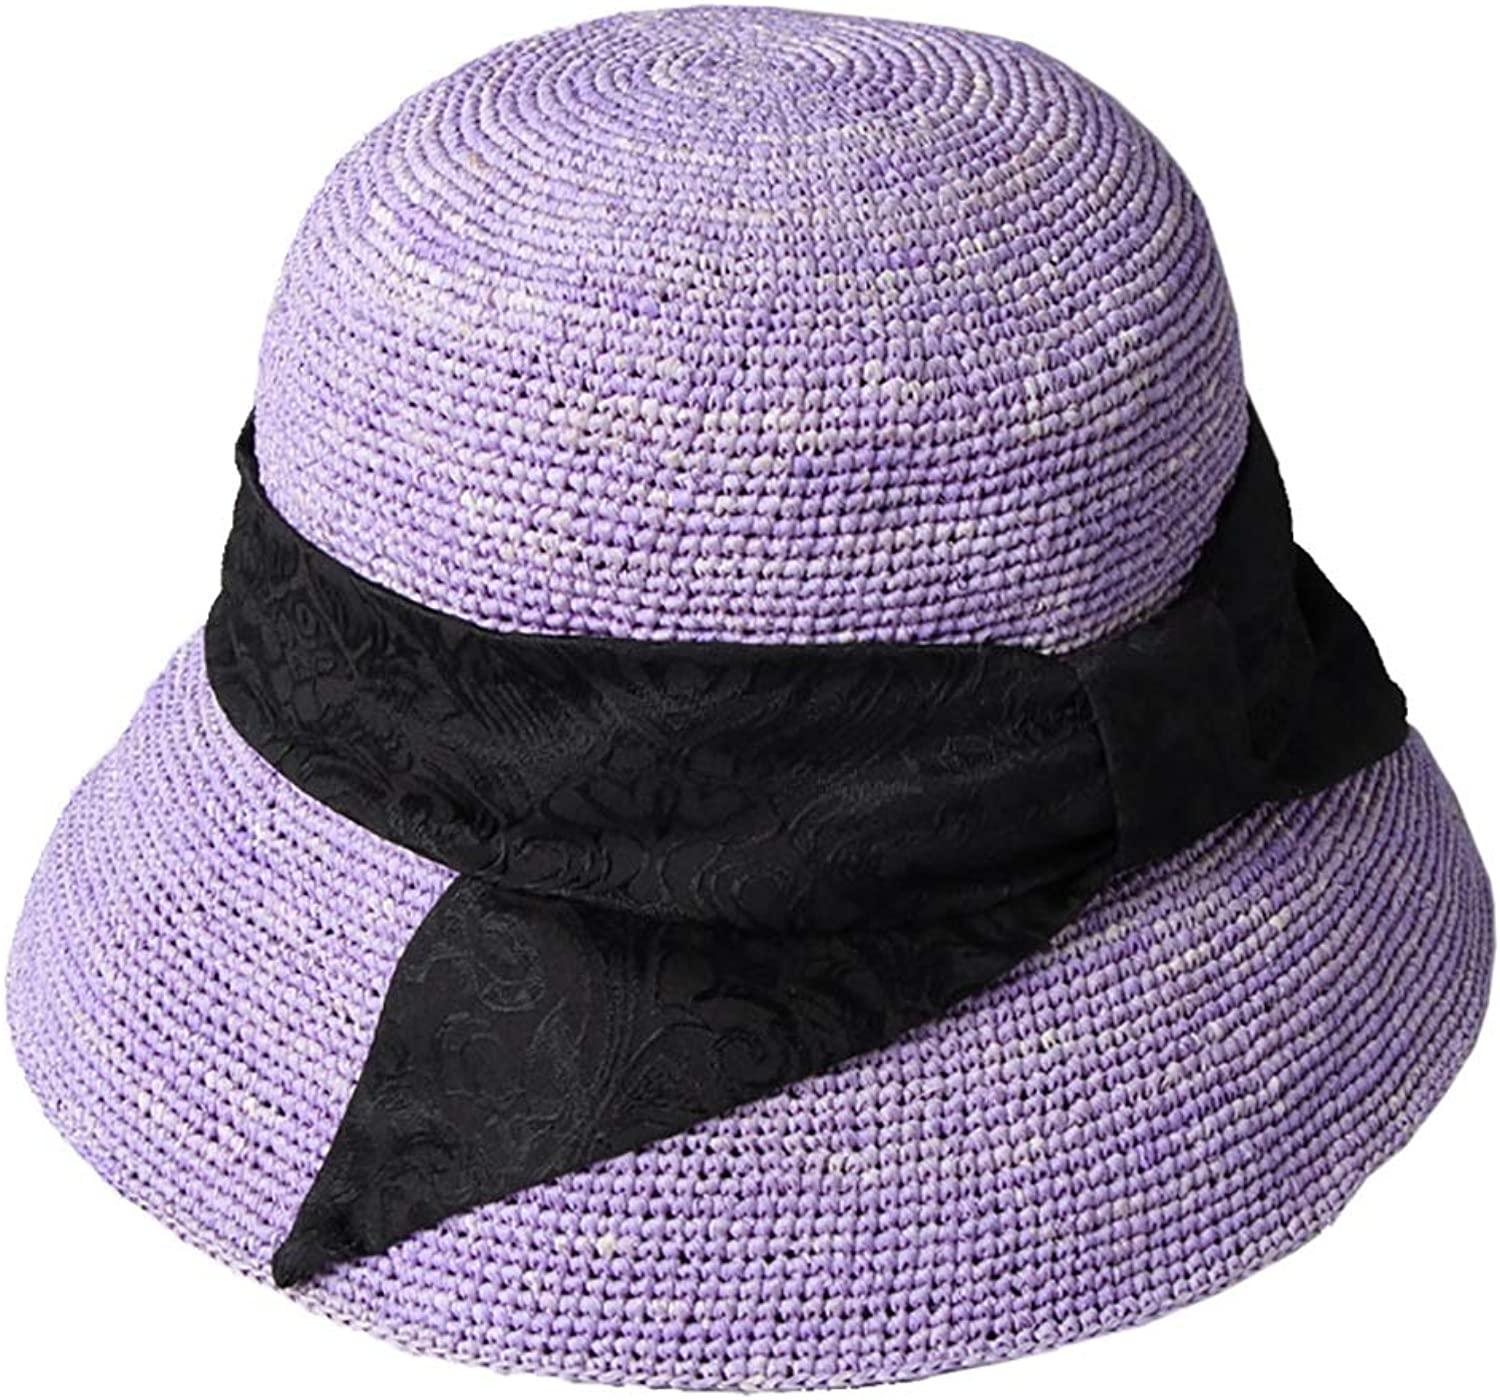 Purple Straw Hat Foldable, Female Travel, Seaside Beach, Leisure Vacation (color   Purple)